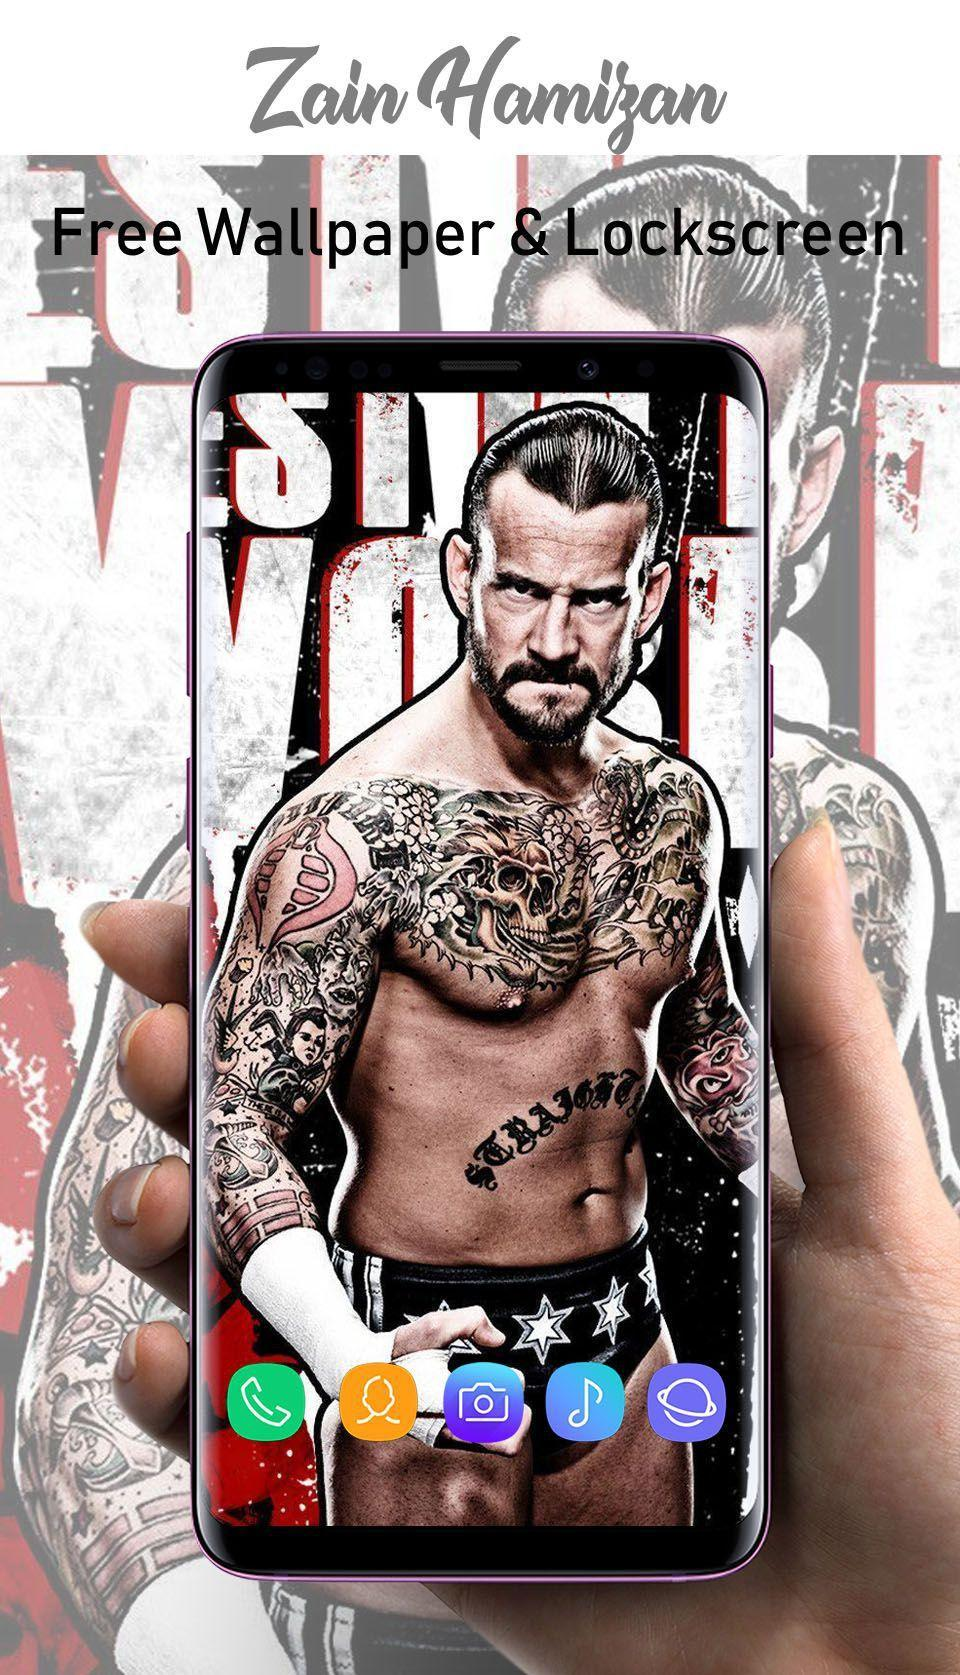 Cm Punk Wallpaper Qhd For Android Apk Download